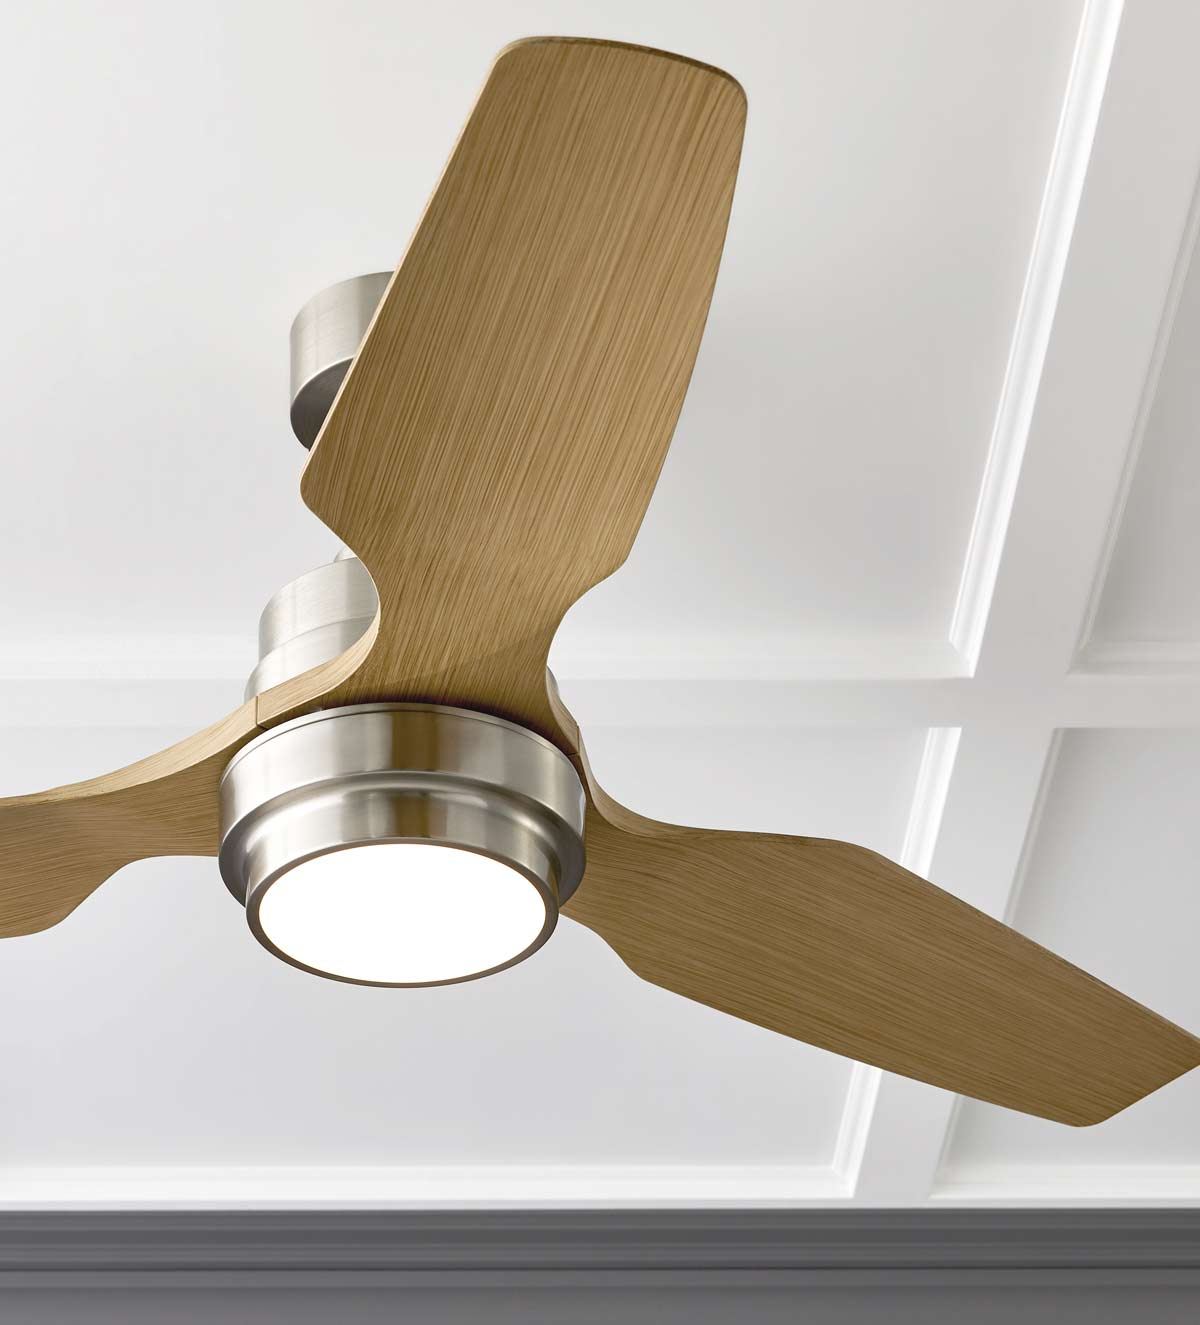 GlucksteinElements | Ceiling fans for any style